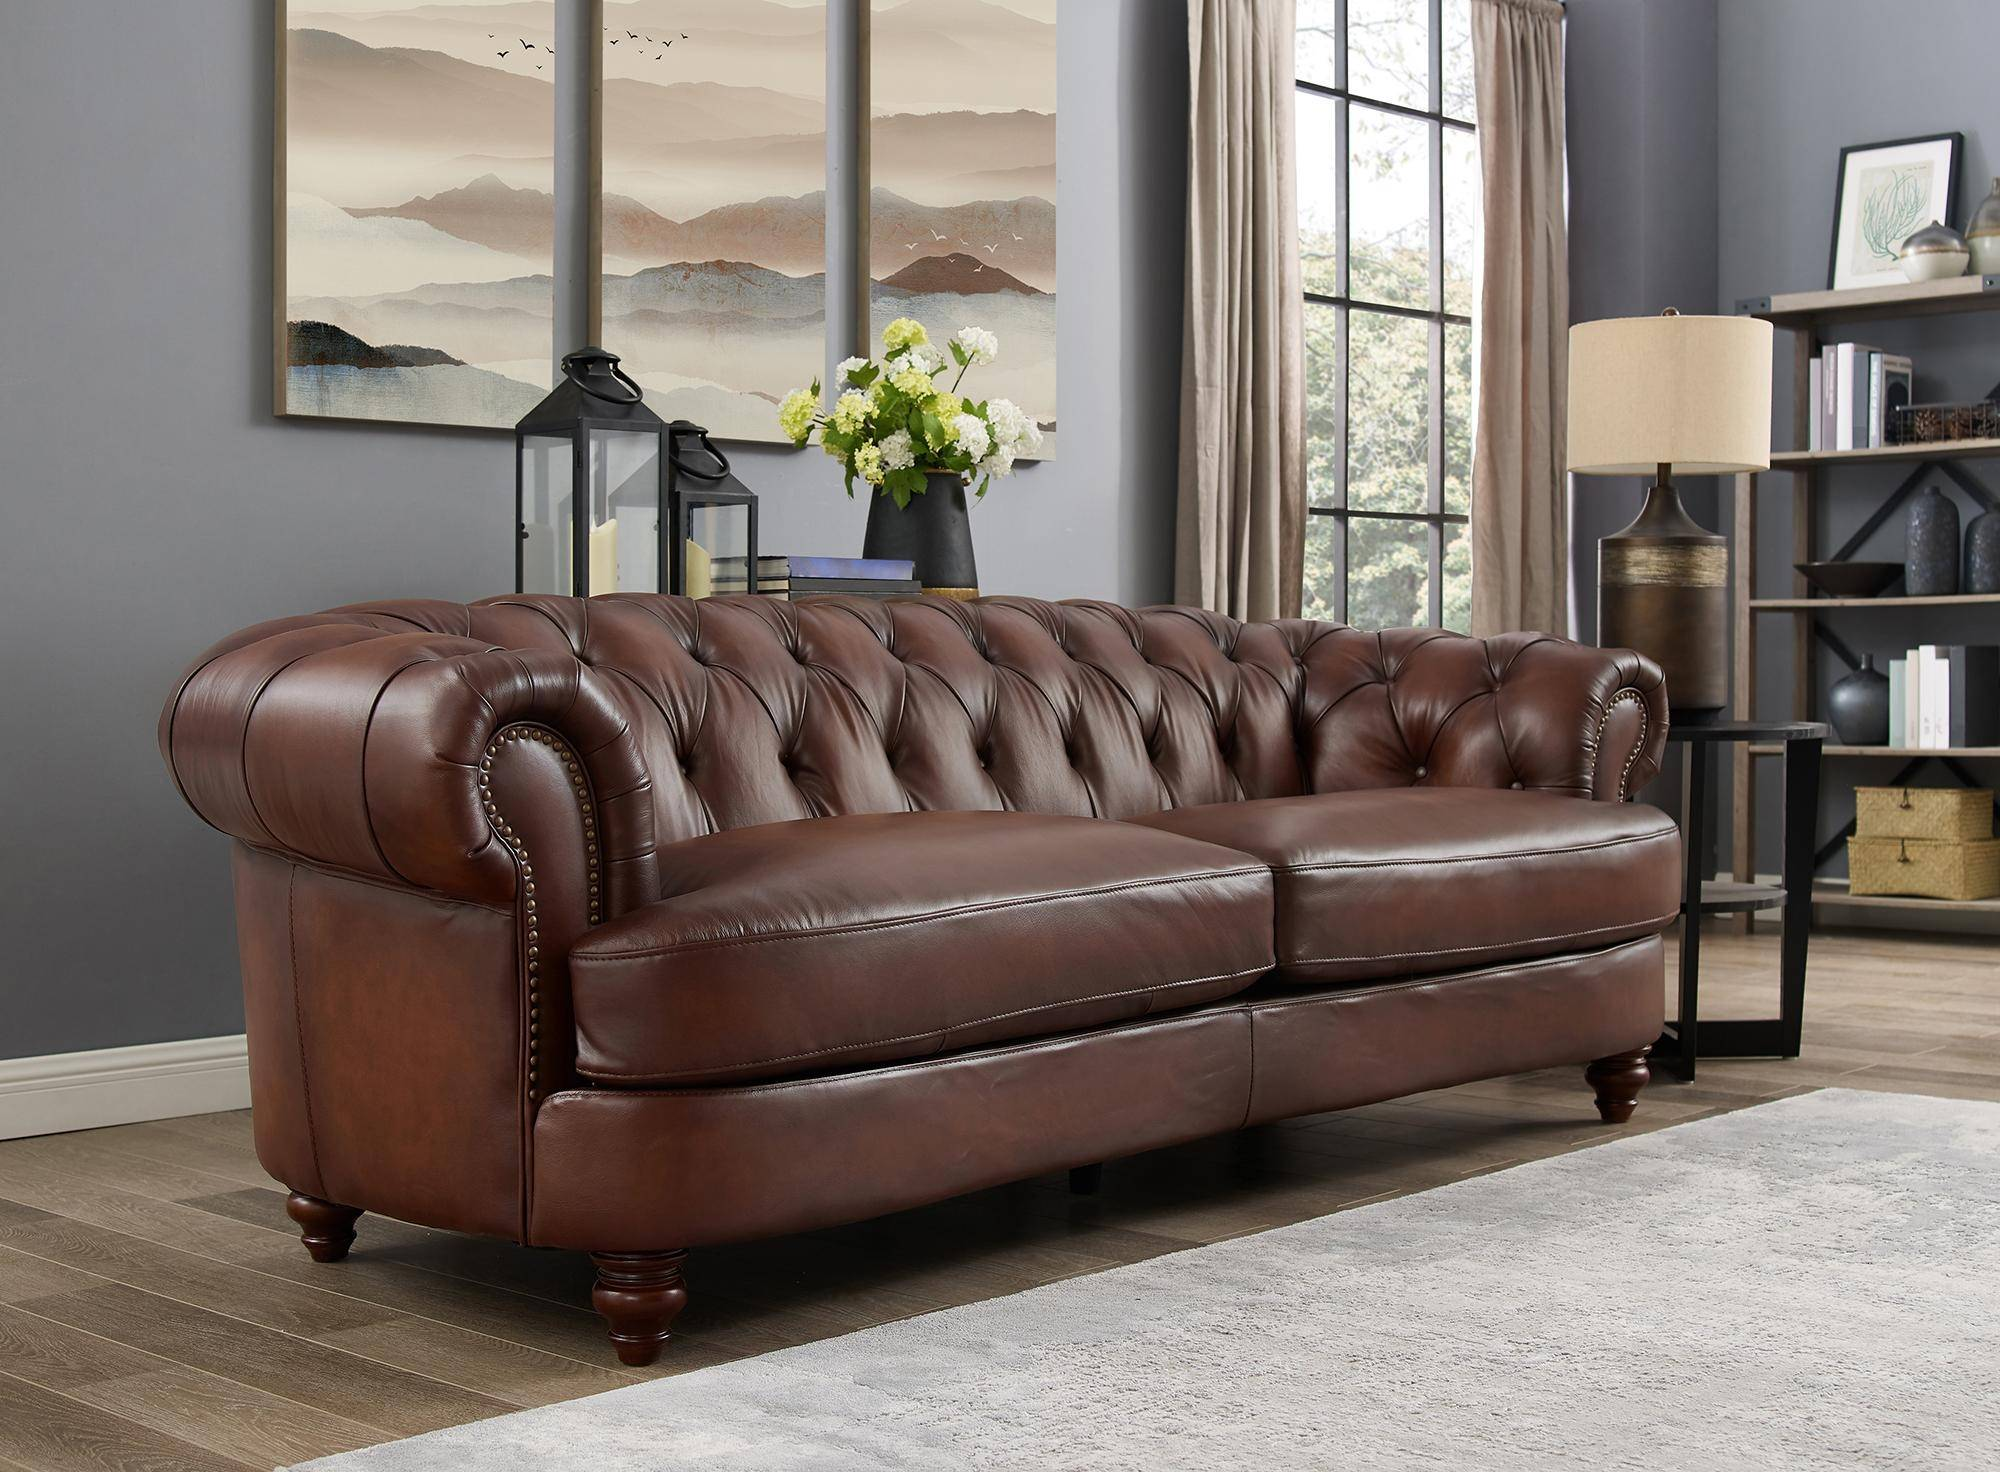 Luxury Dark Brown MELTON Genuine Leather Sofa HYDELINE ...